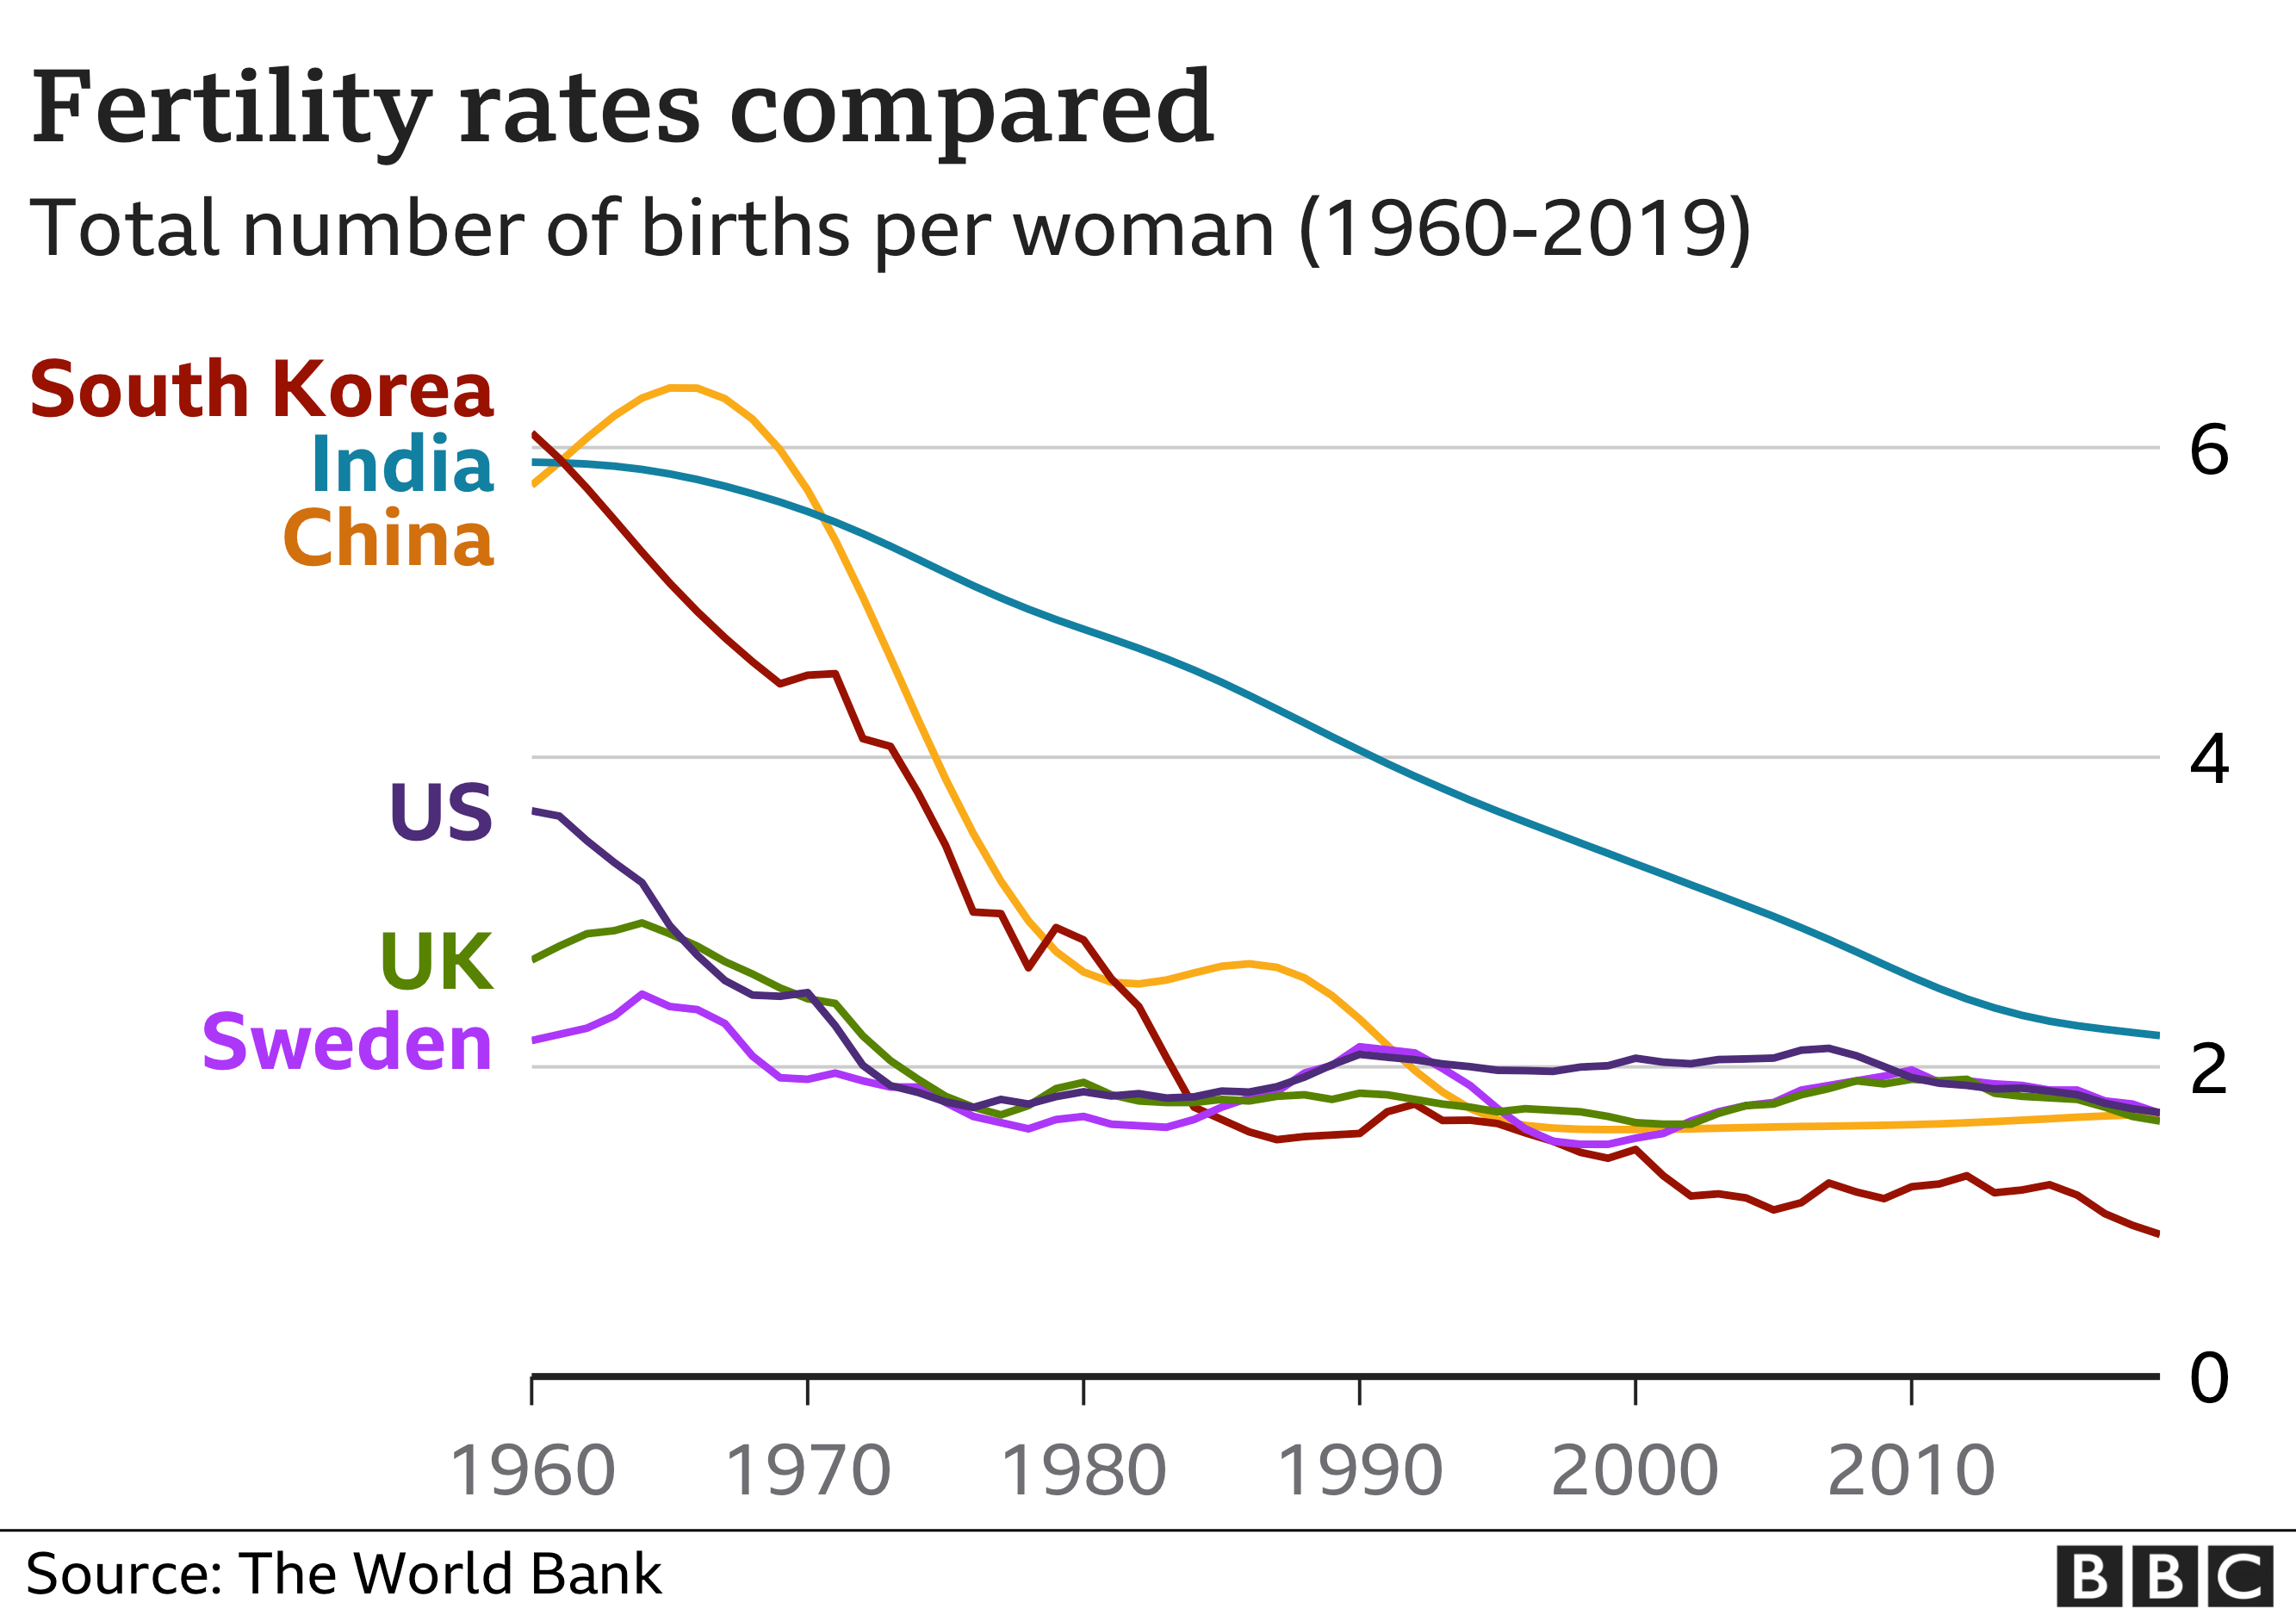 Fertility rates compared between China, Sweden, US, UK, India and South Korea